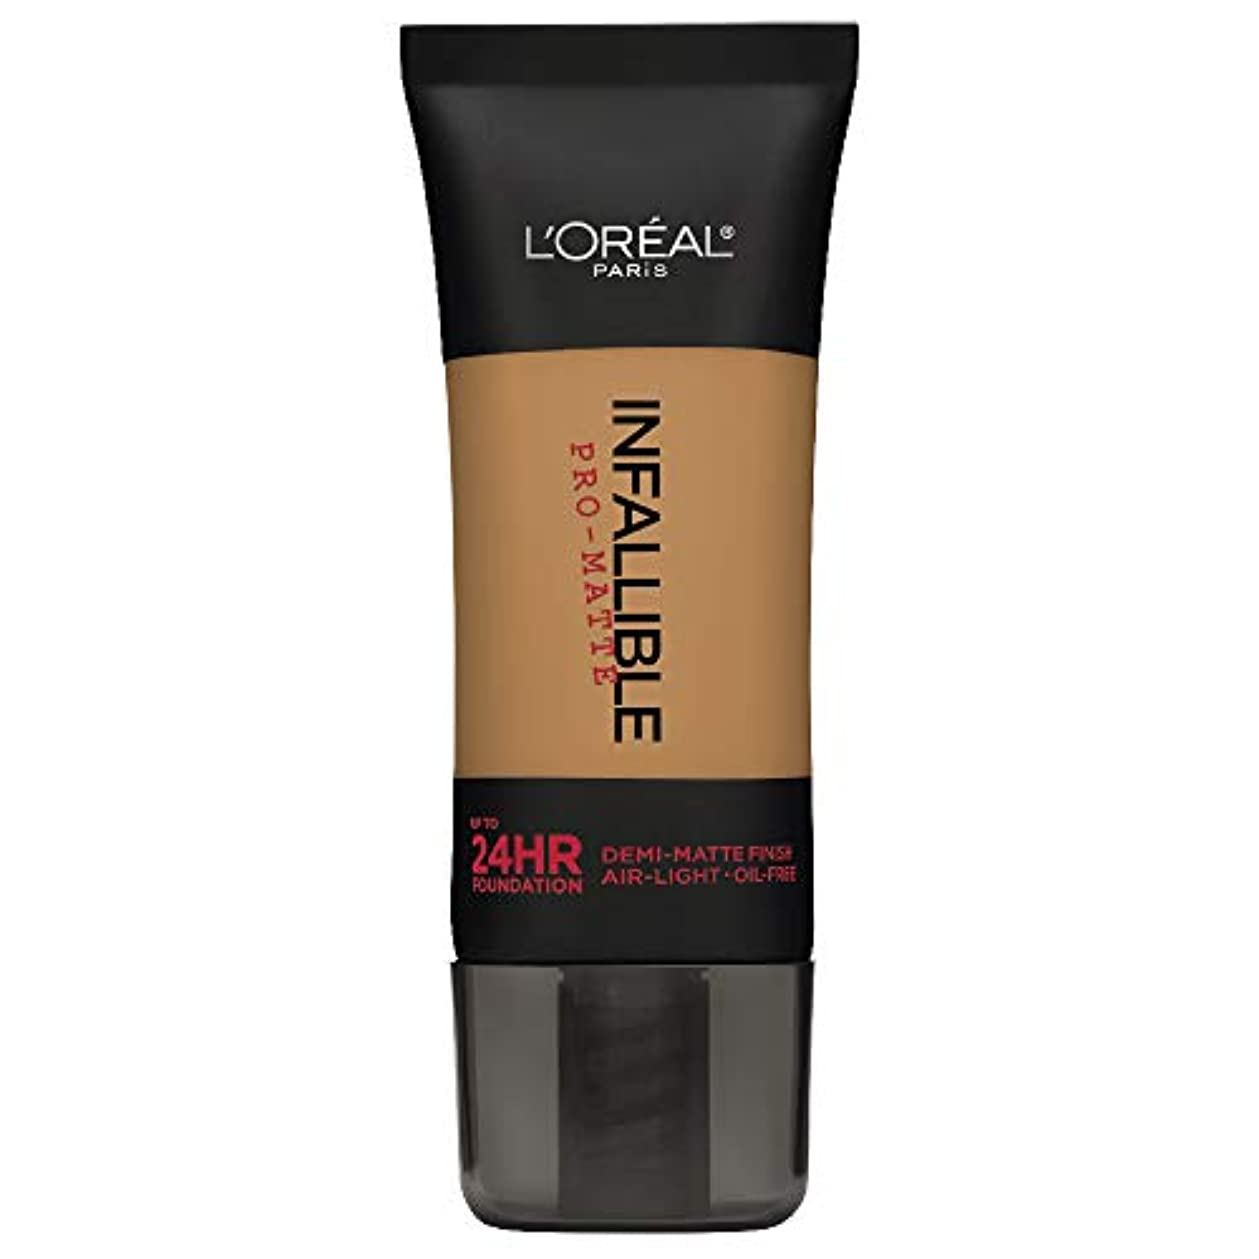 夜明け骨折将来のL'Oreal Paris Infallible Pro-Matte Foundation Makeup, 108 Caramel Beige, 1 fl. oz[並行輸入品]